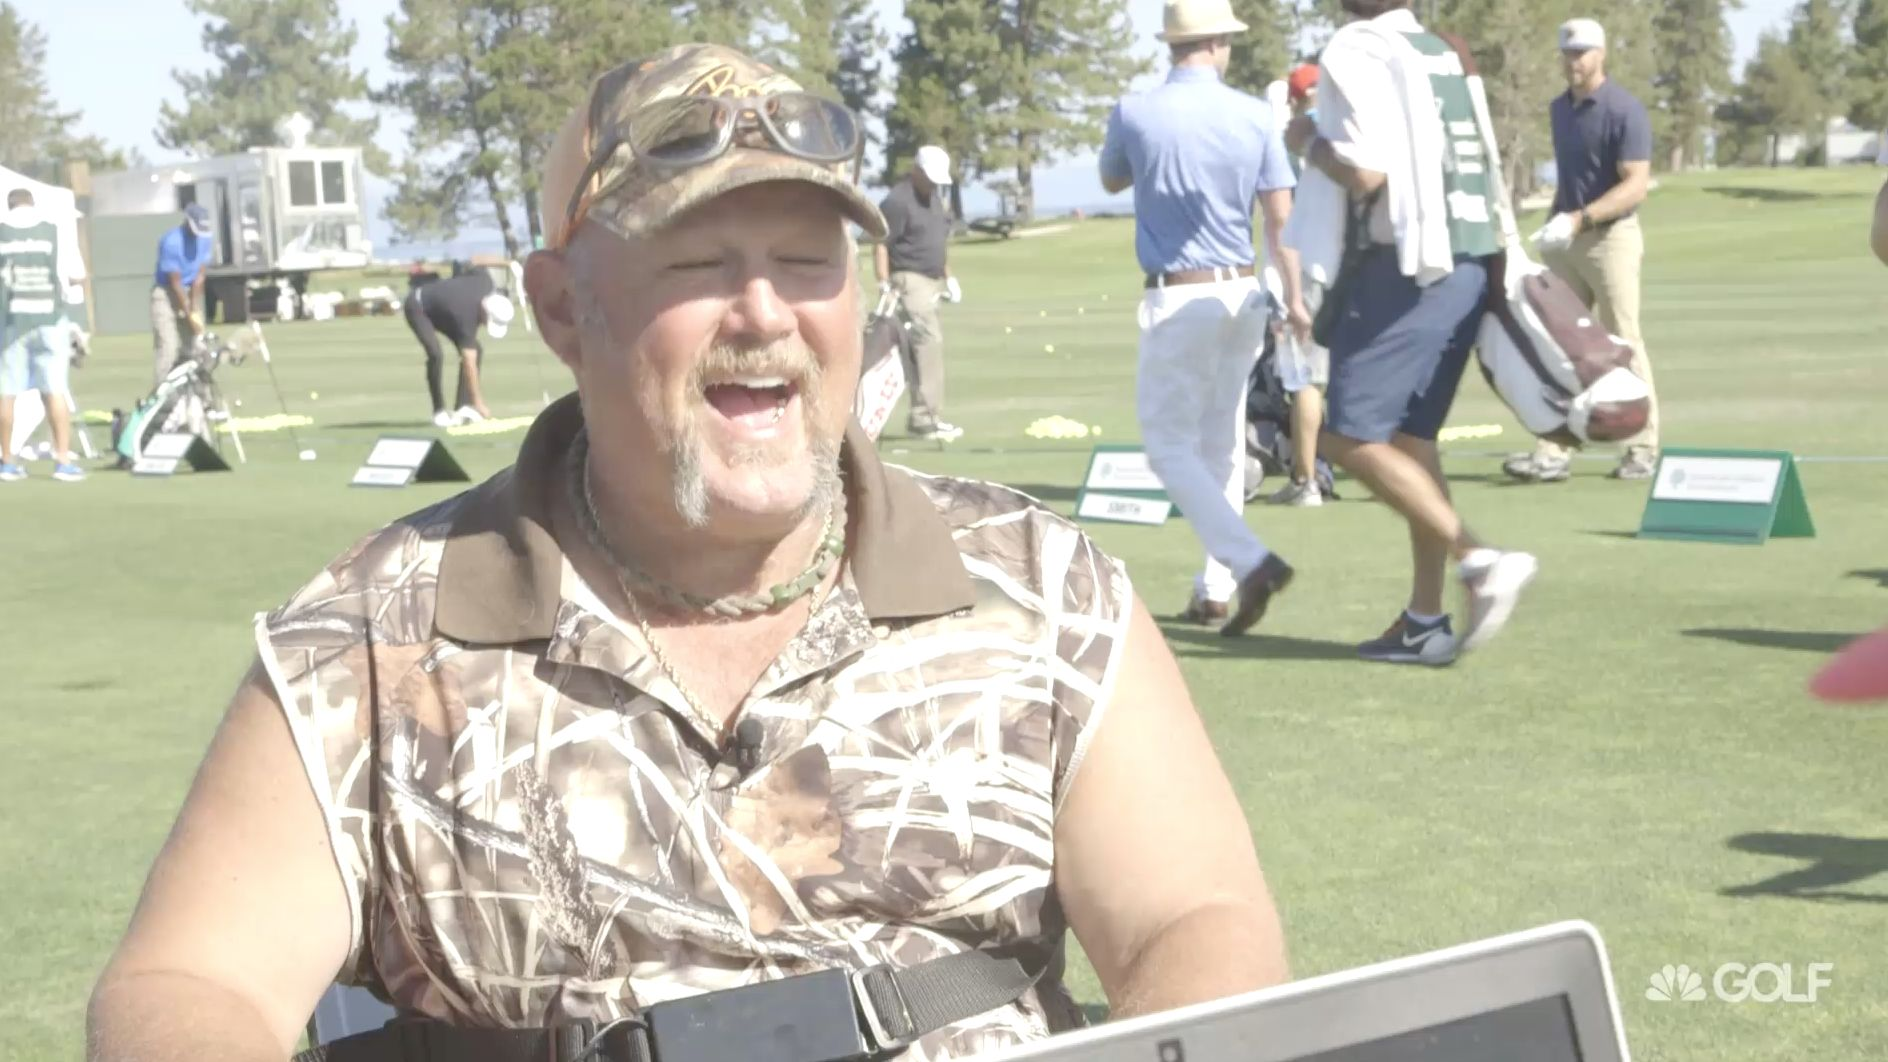 http://golfchannel-a.akamaihd.net/ramp/566/787/acc-lie-detector-larry-cable-guy.jpg